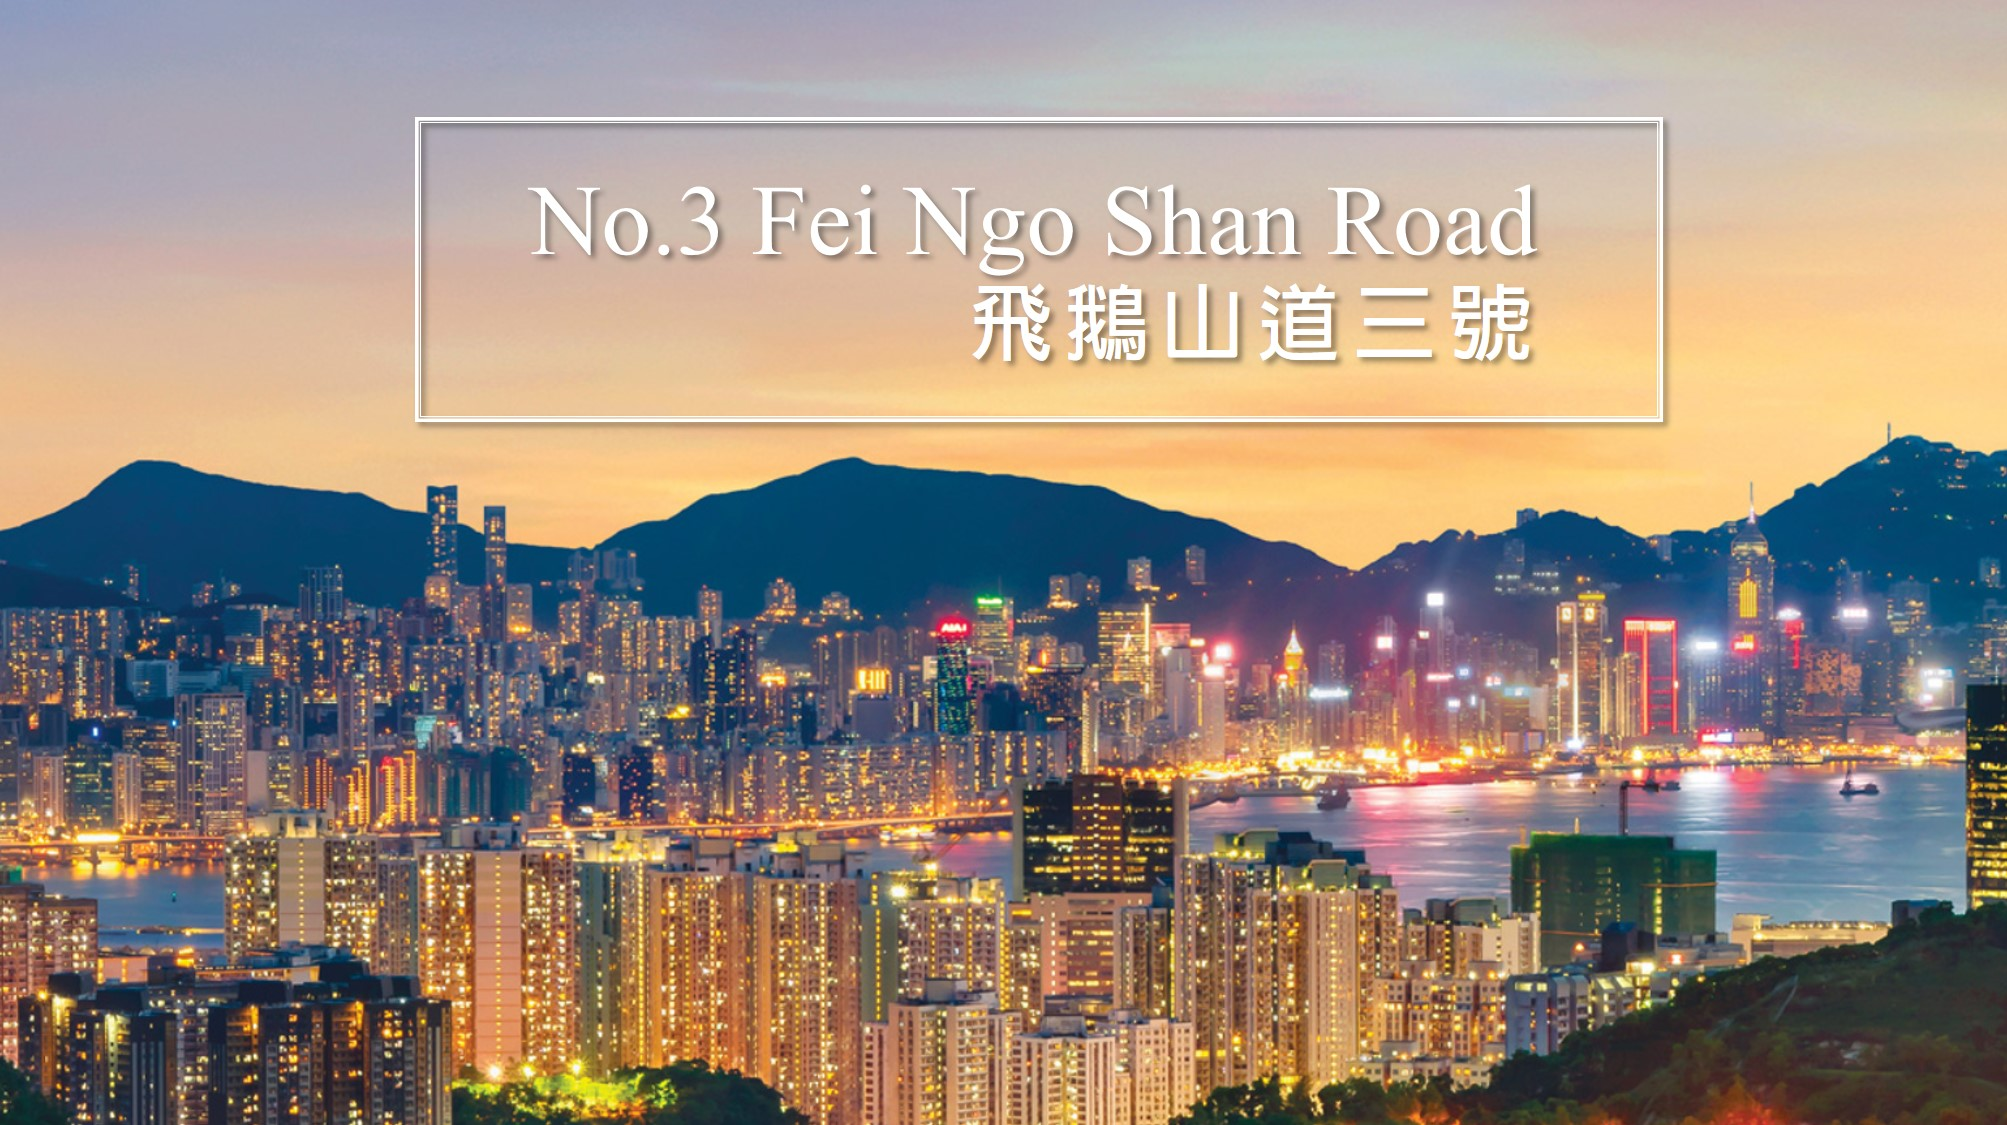 飞鹅山道三号 No 3 Fei Ngo Shan Road